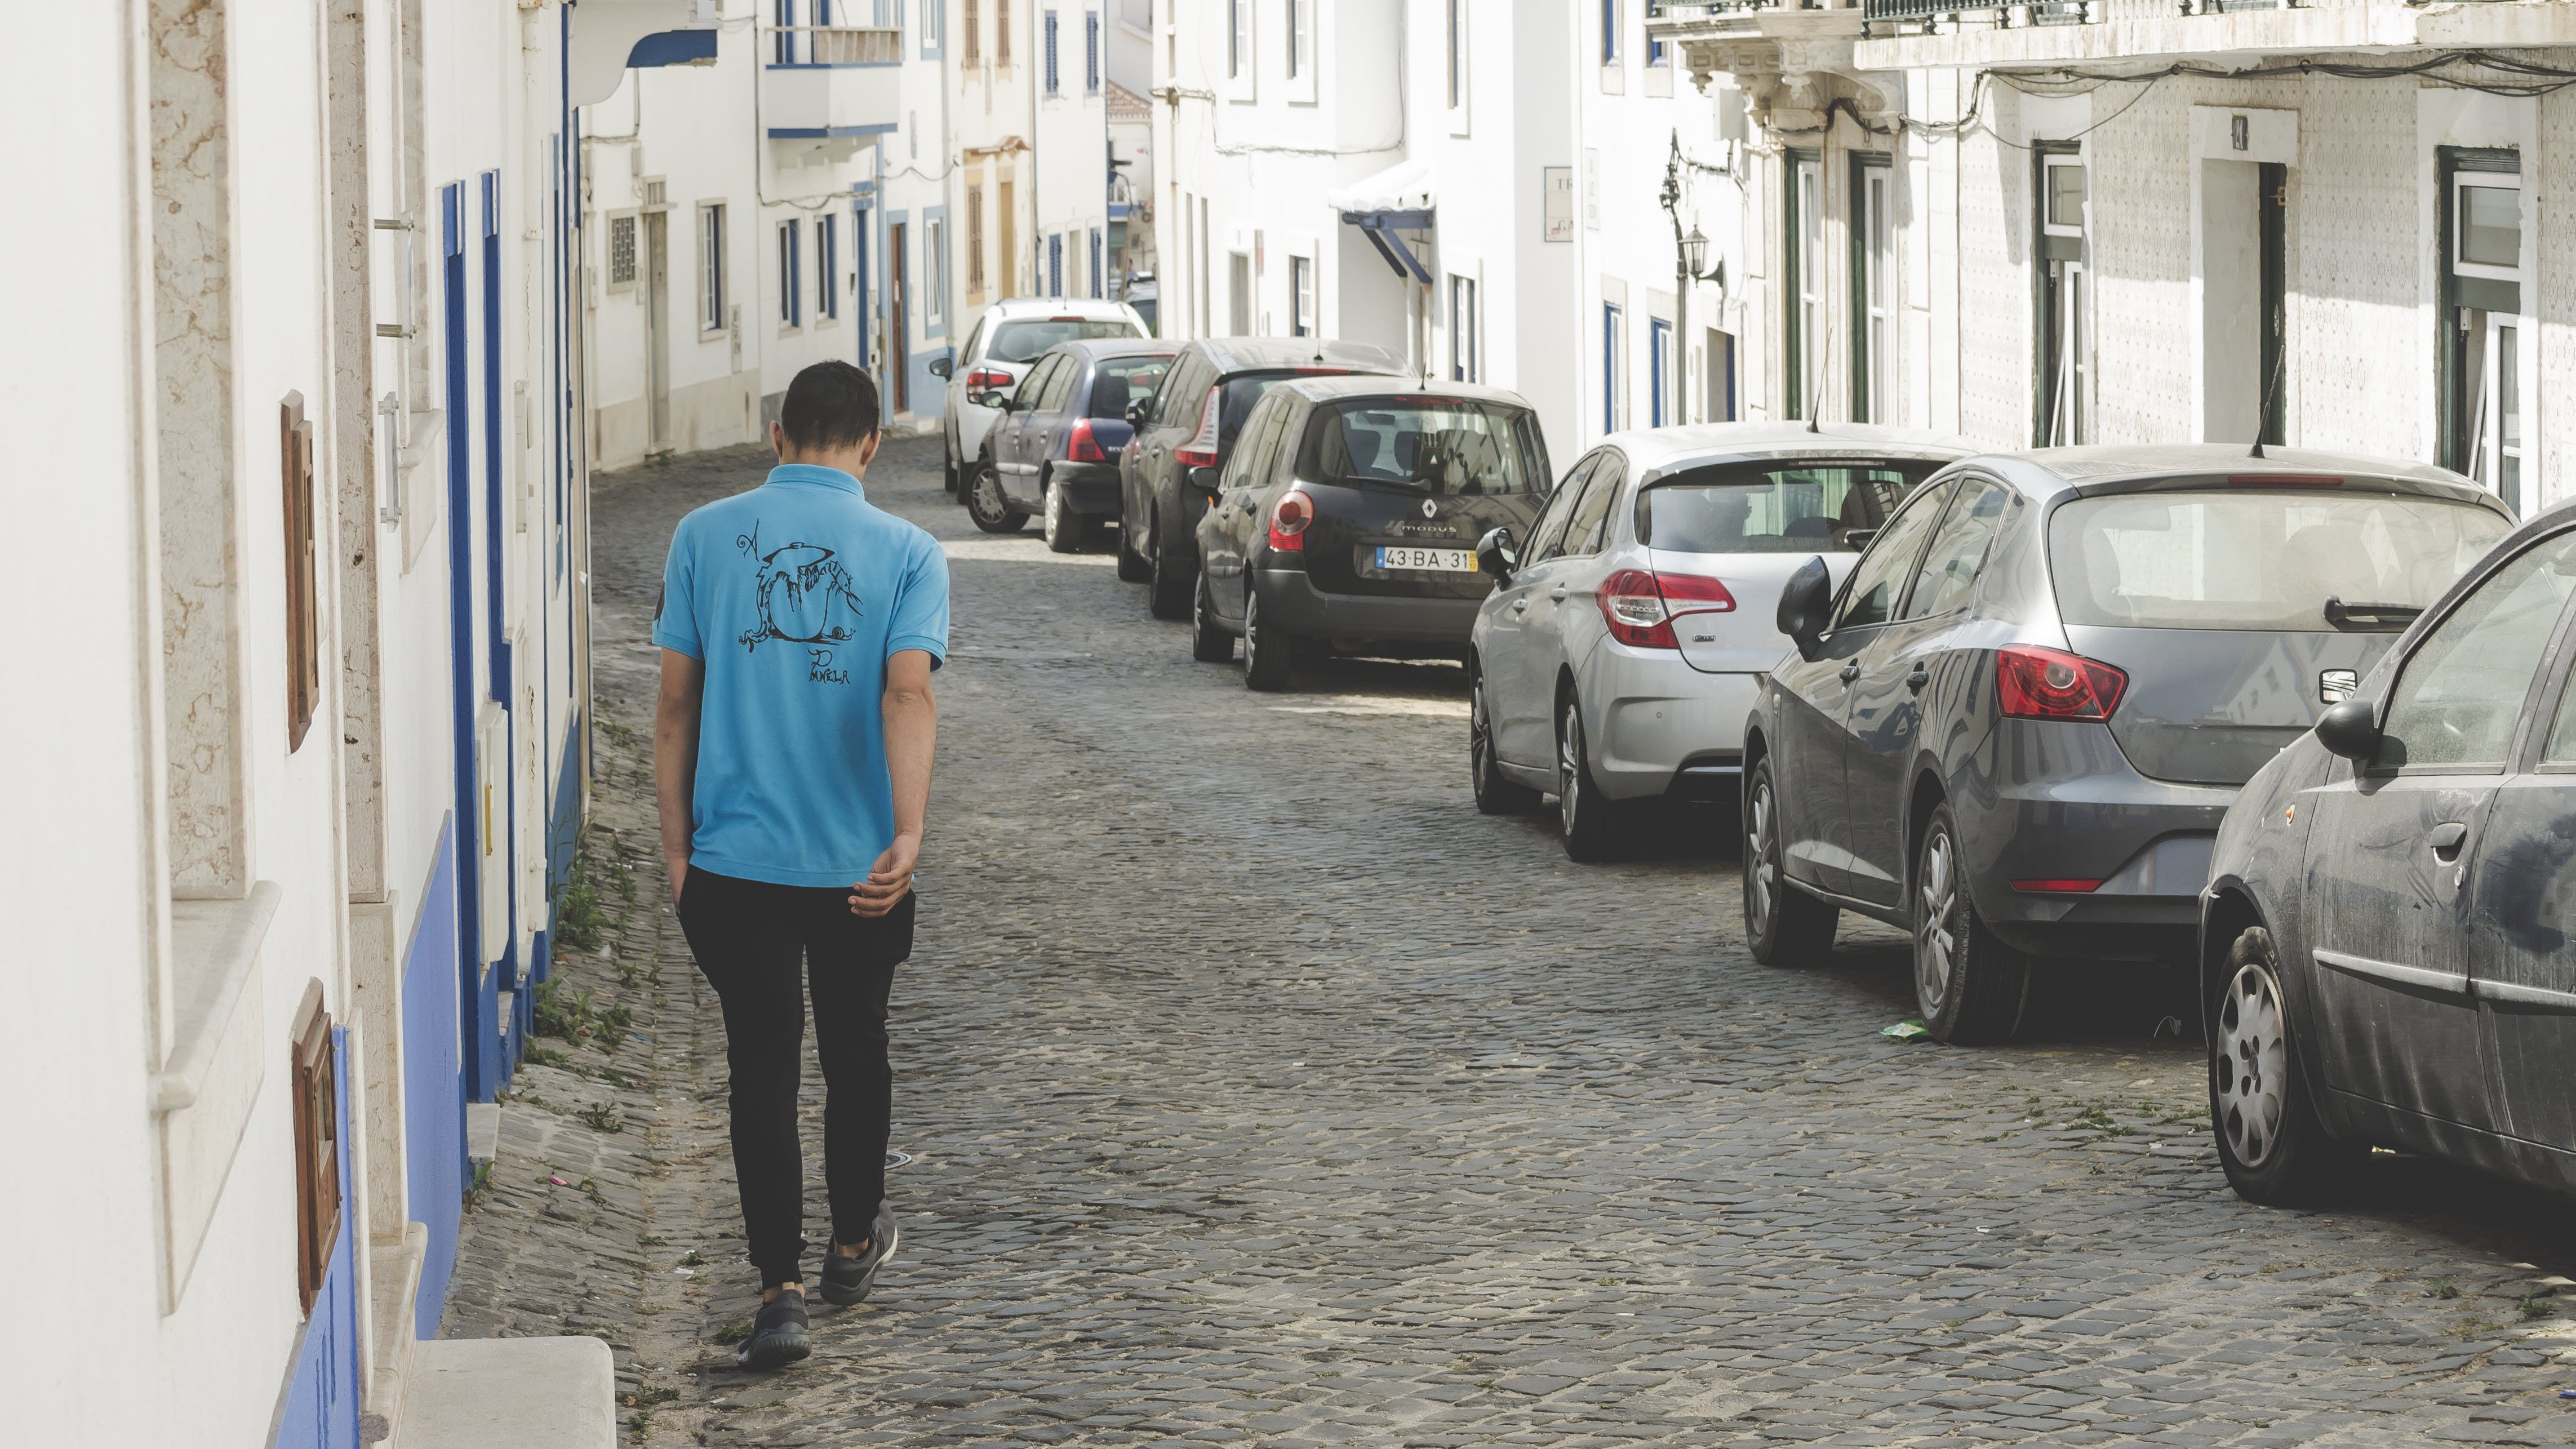 Free stock photo of boy, cars, hood, portugal